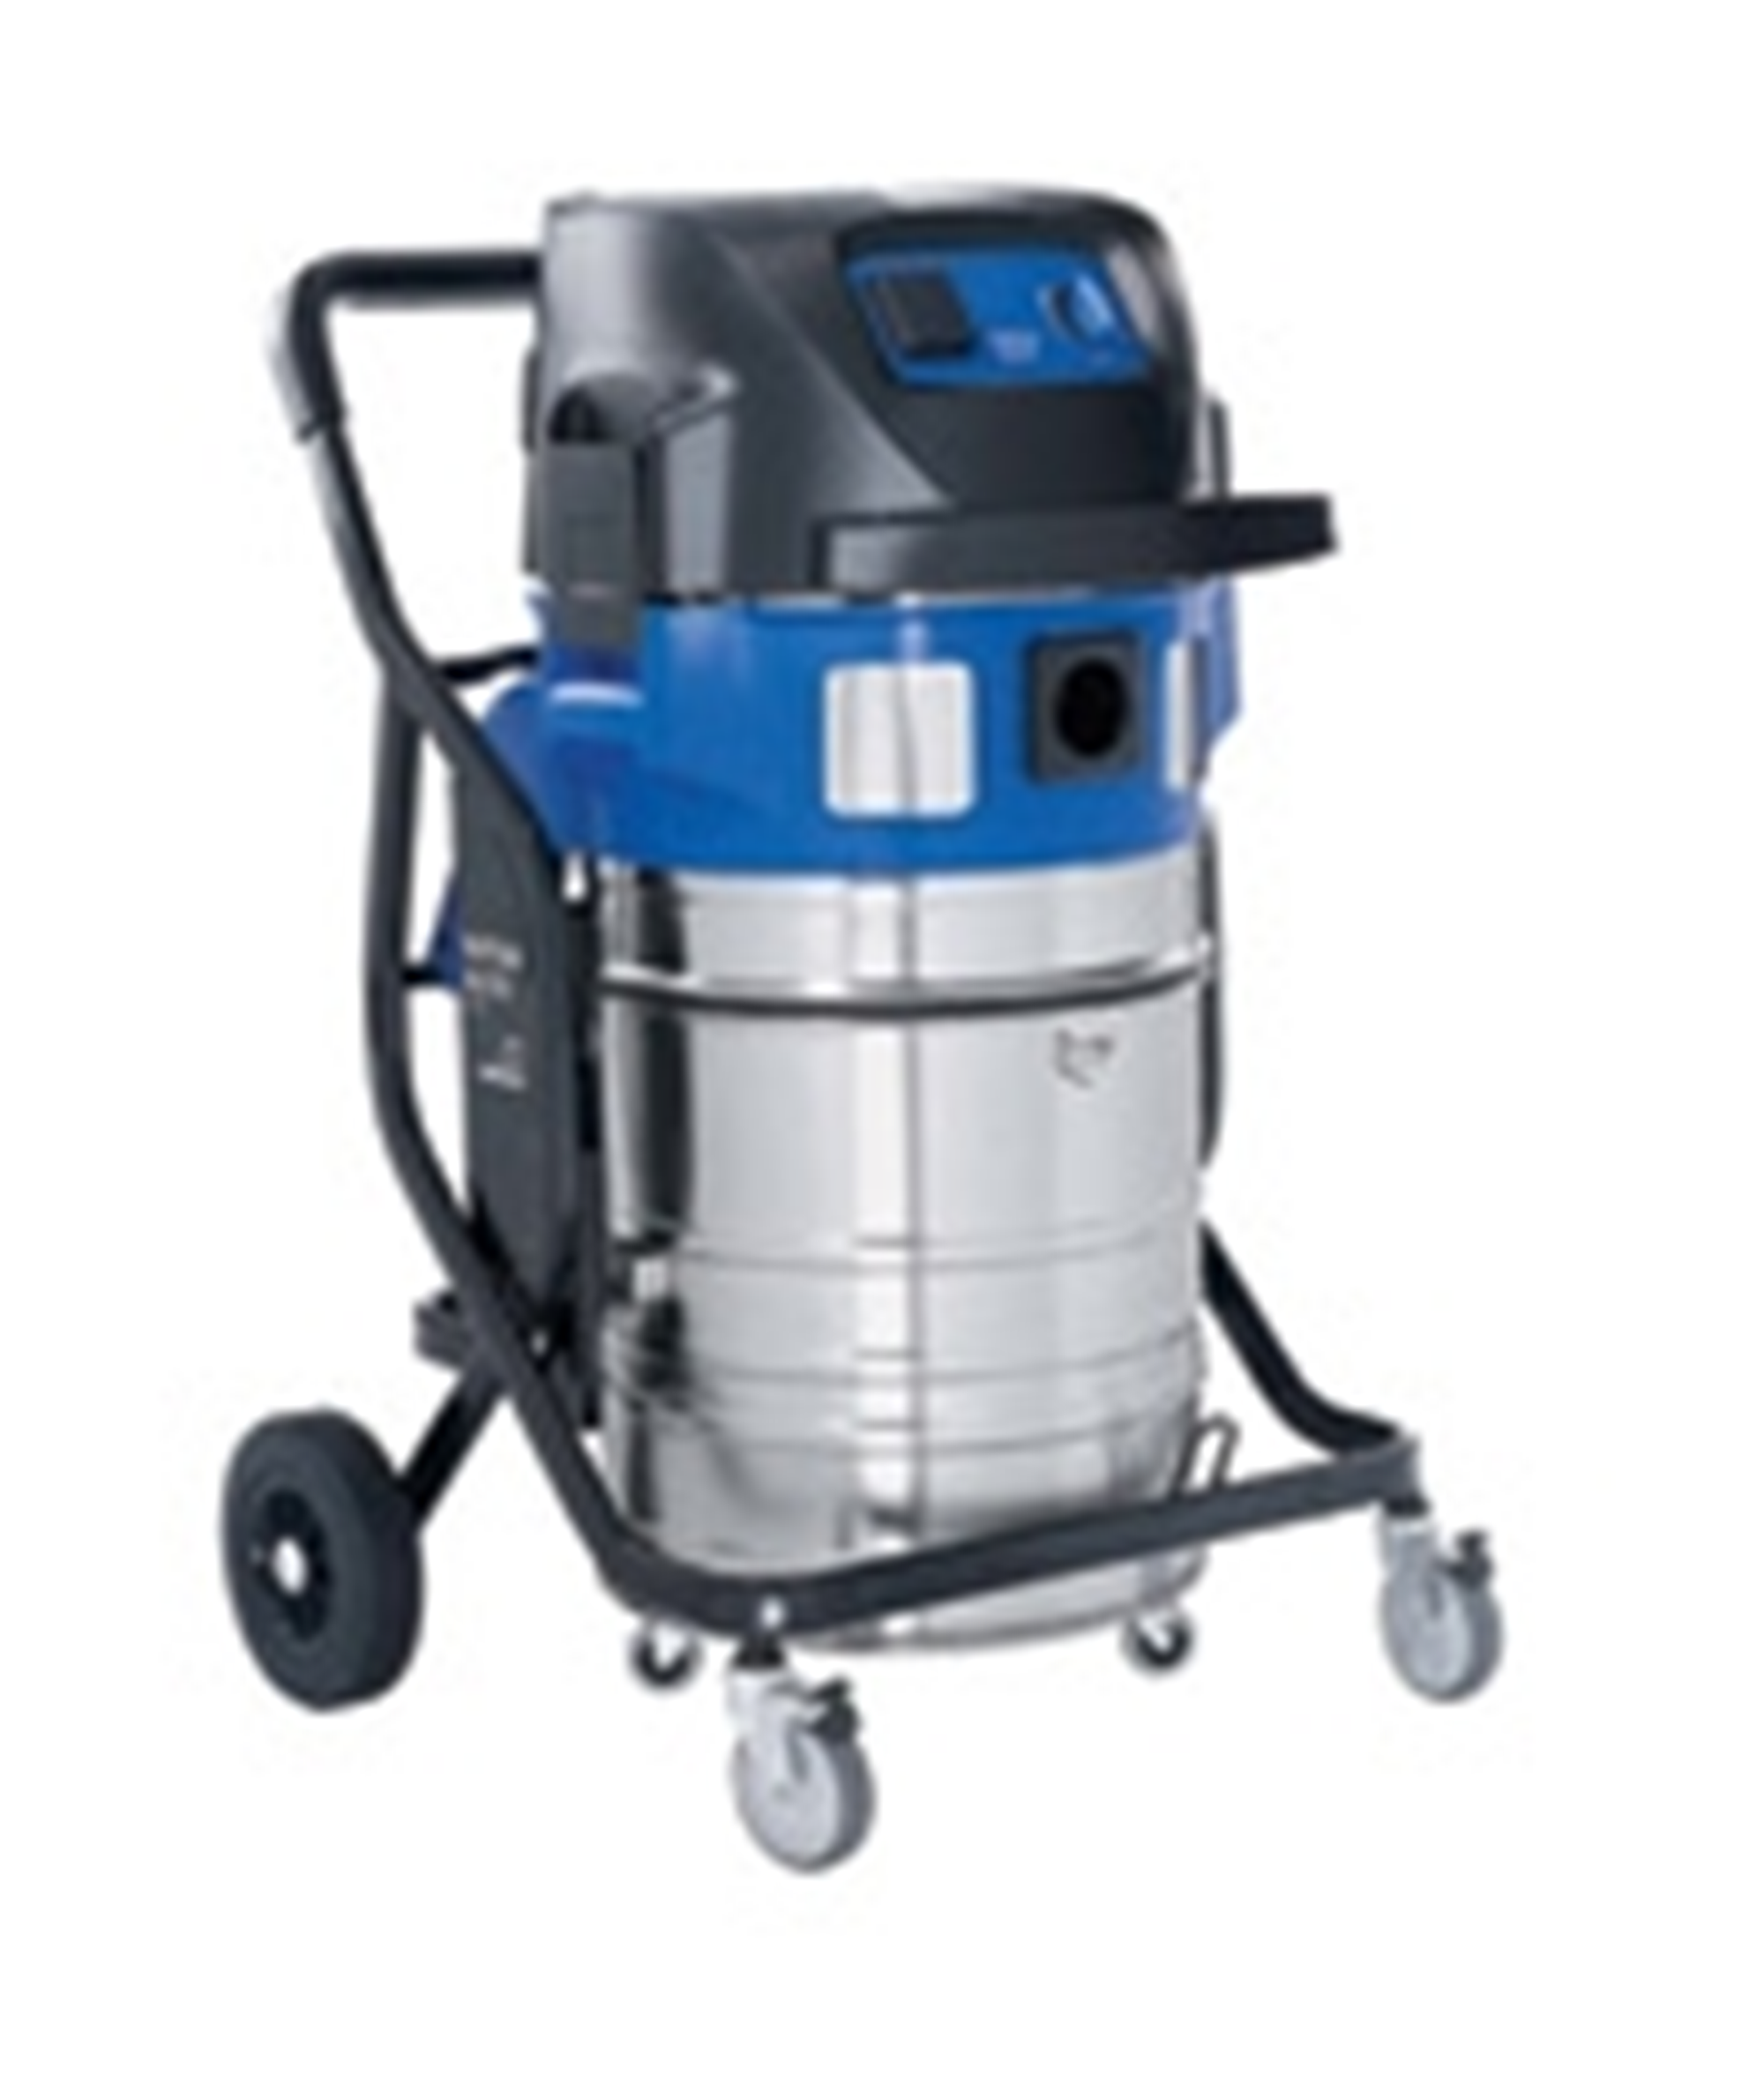 Product, Vacuum cleaners, Industrial vacuum cleaners, Single-phase wet & dry, Nilfisk, Attix 965-21 SD XC